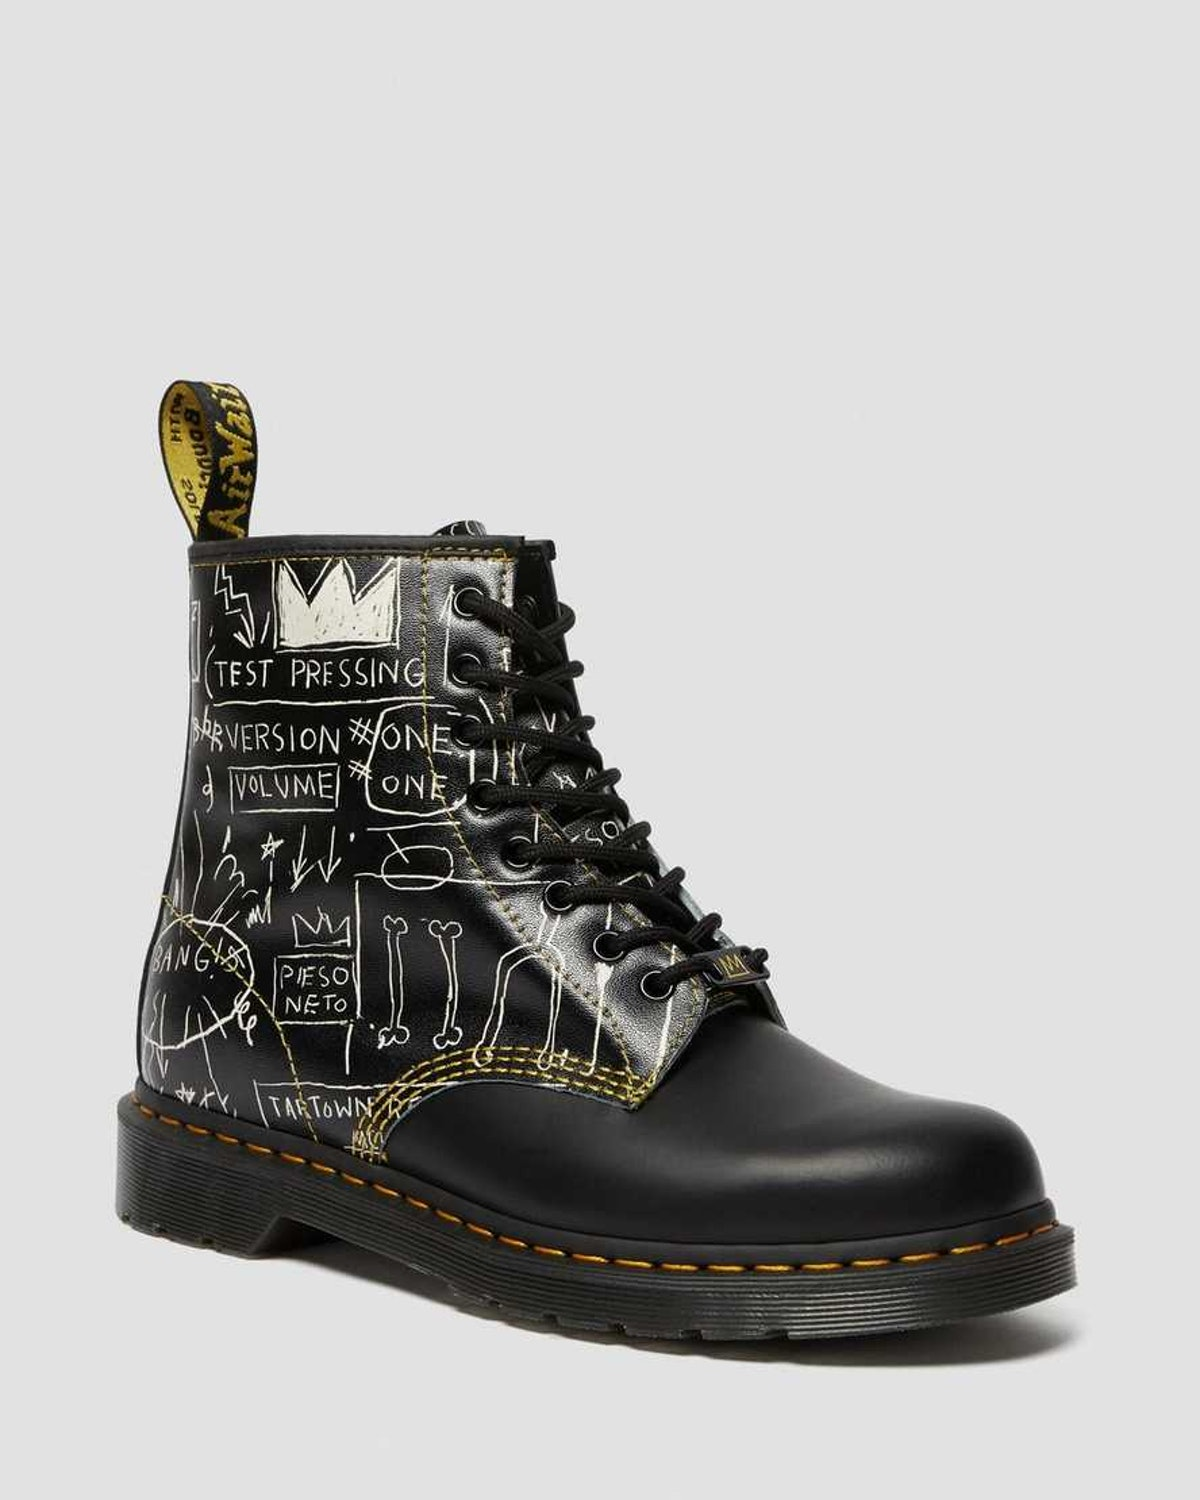 146 Basquiat Leather Lace Up Boots